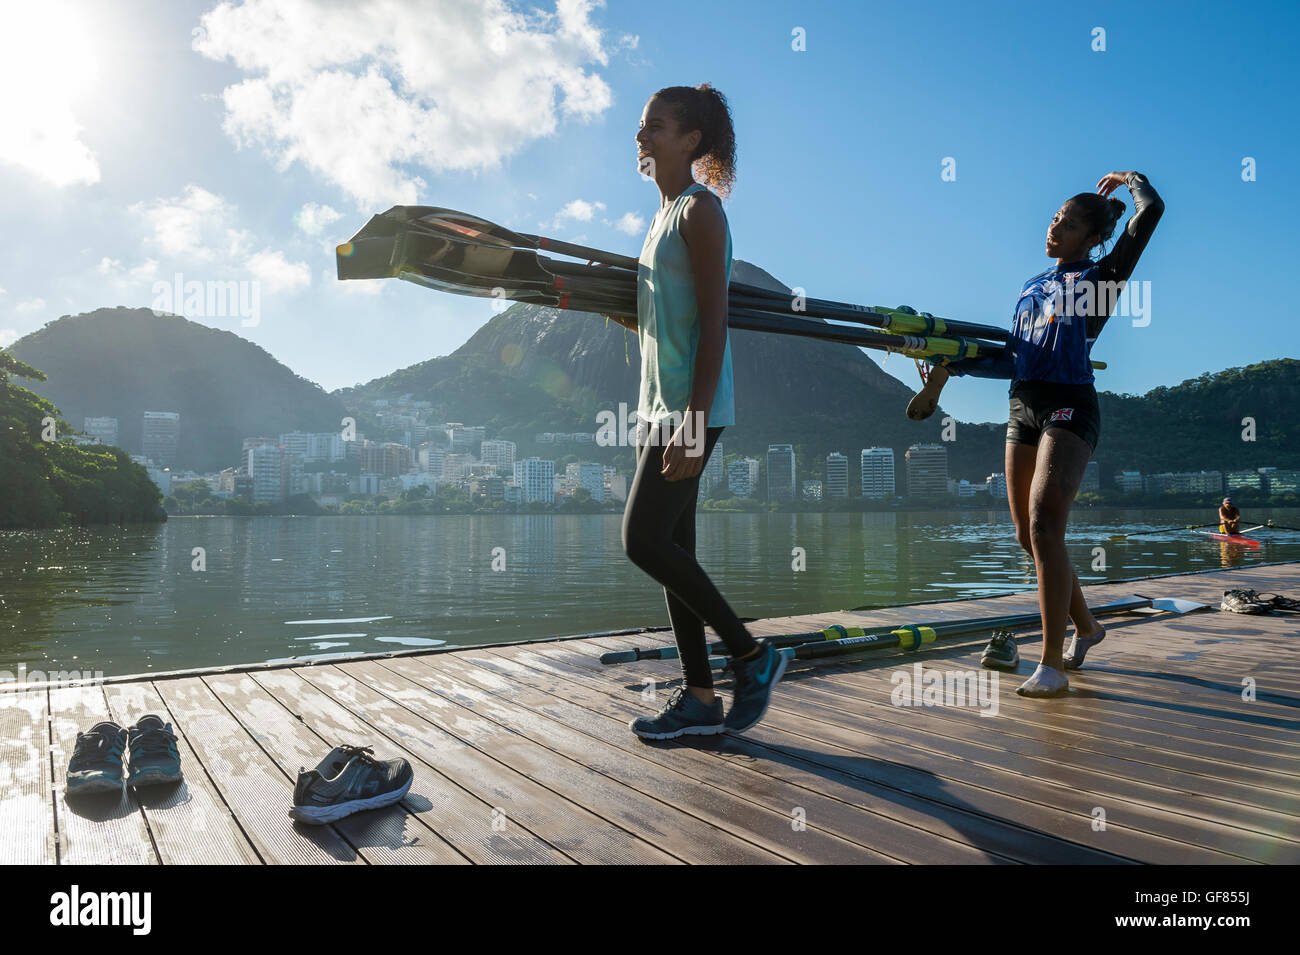 RIO DE JANEIRO - MARCH 22, 2016: After training, two female Brazilian rowers carry their boat back to the clubhouse - Stock Image